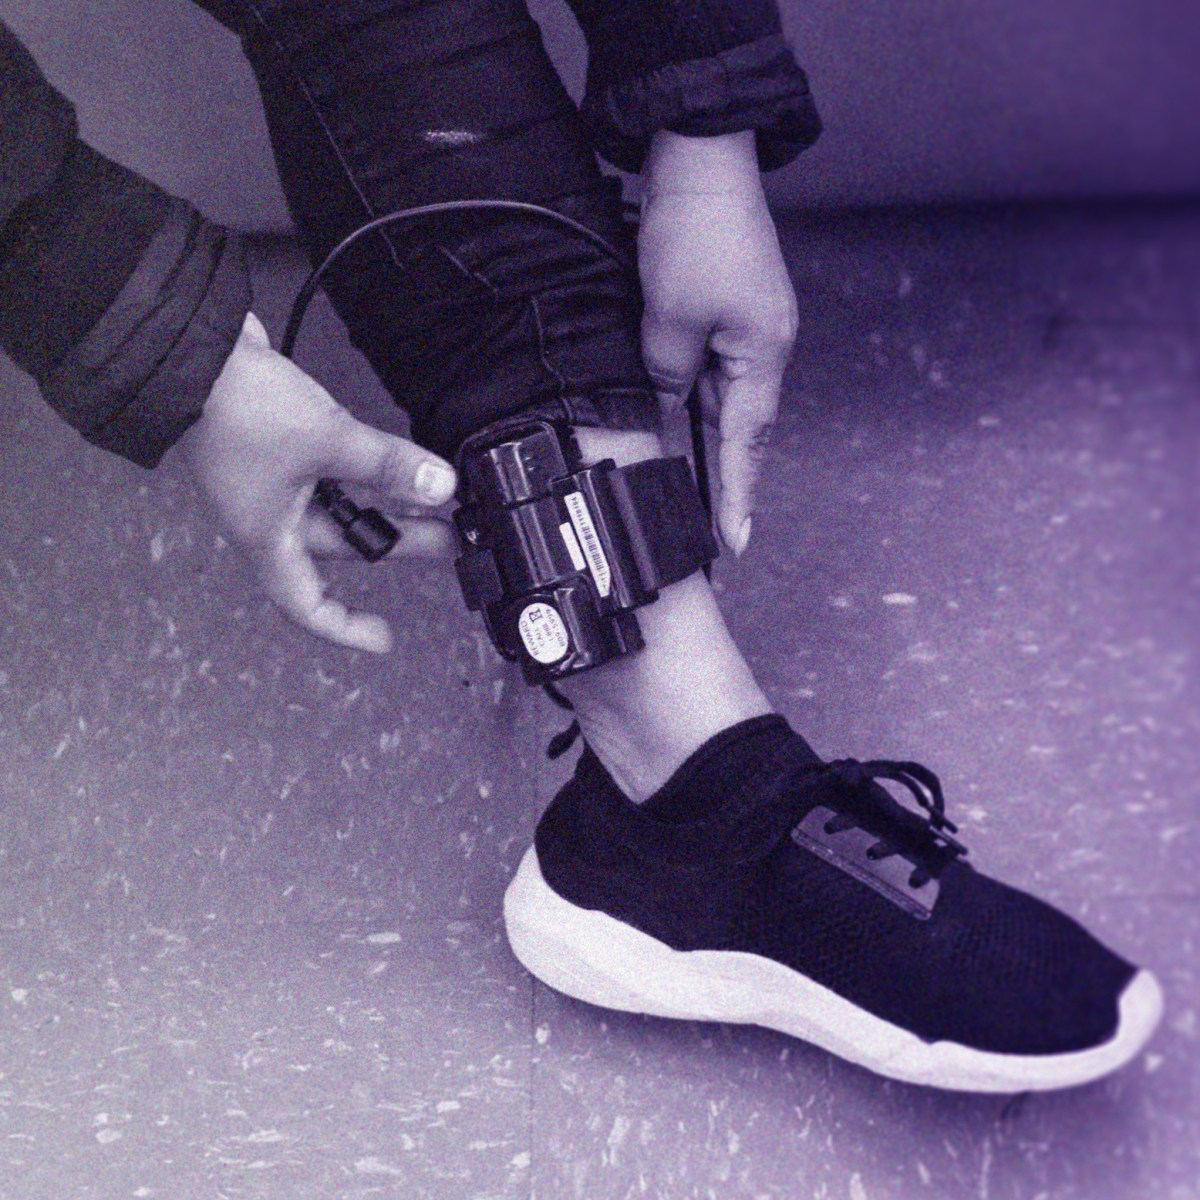 Electronic monitoring program, used widely, slammed in new report